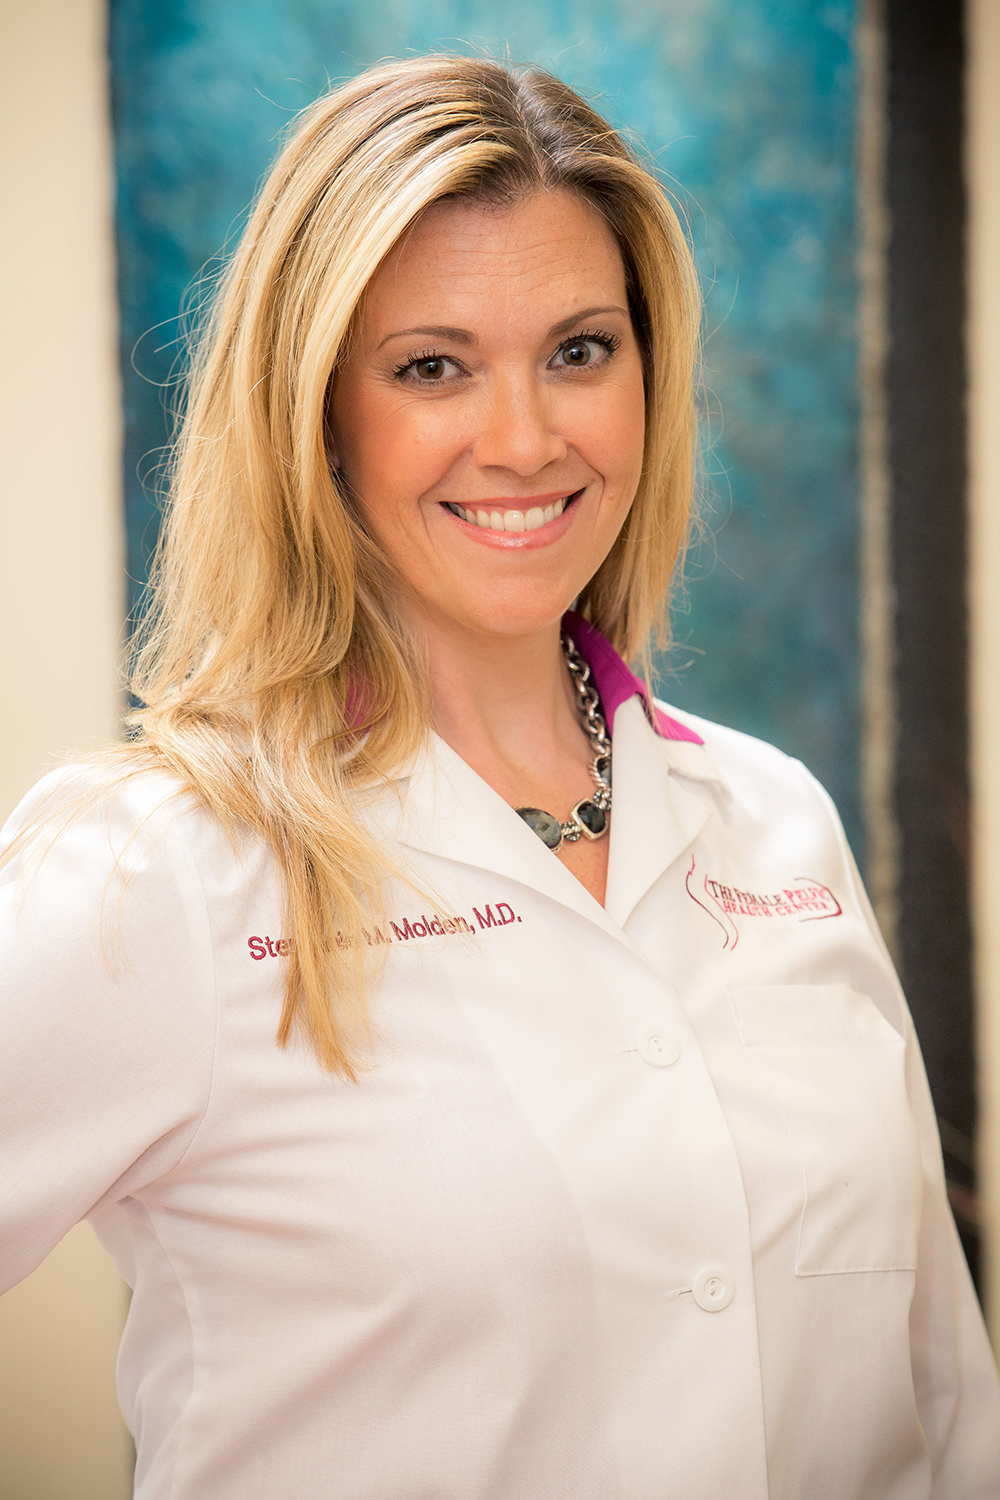 Dr. Stephanie Molden, Urogynecologist serving PA, NJ, DE